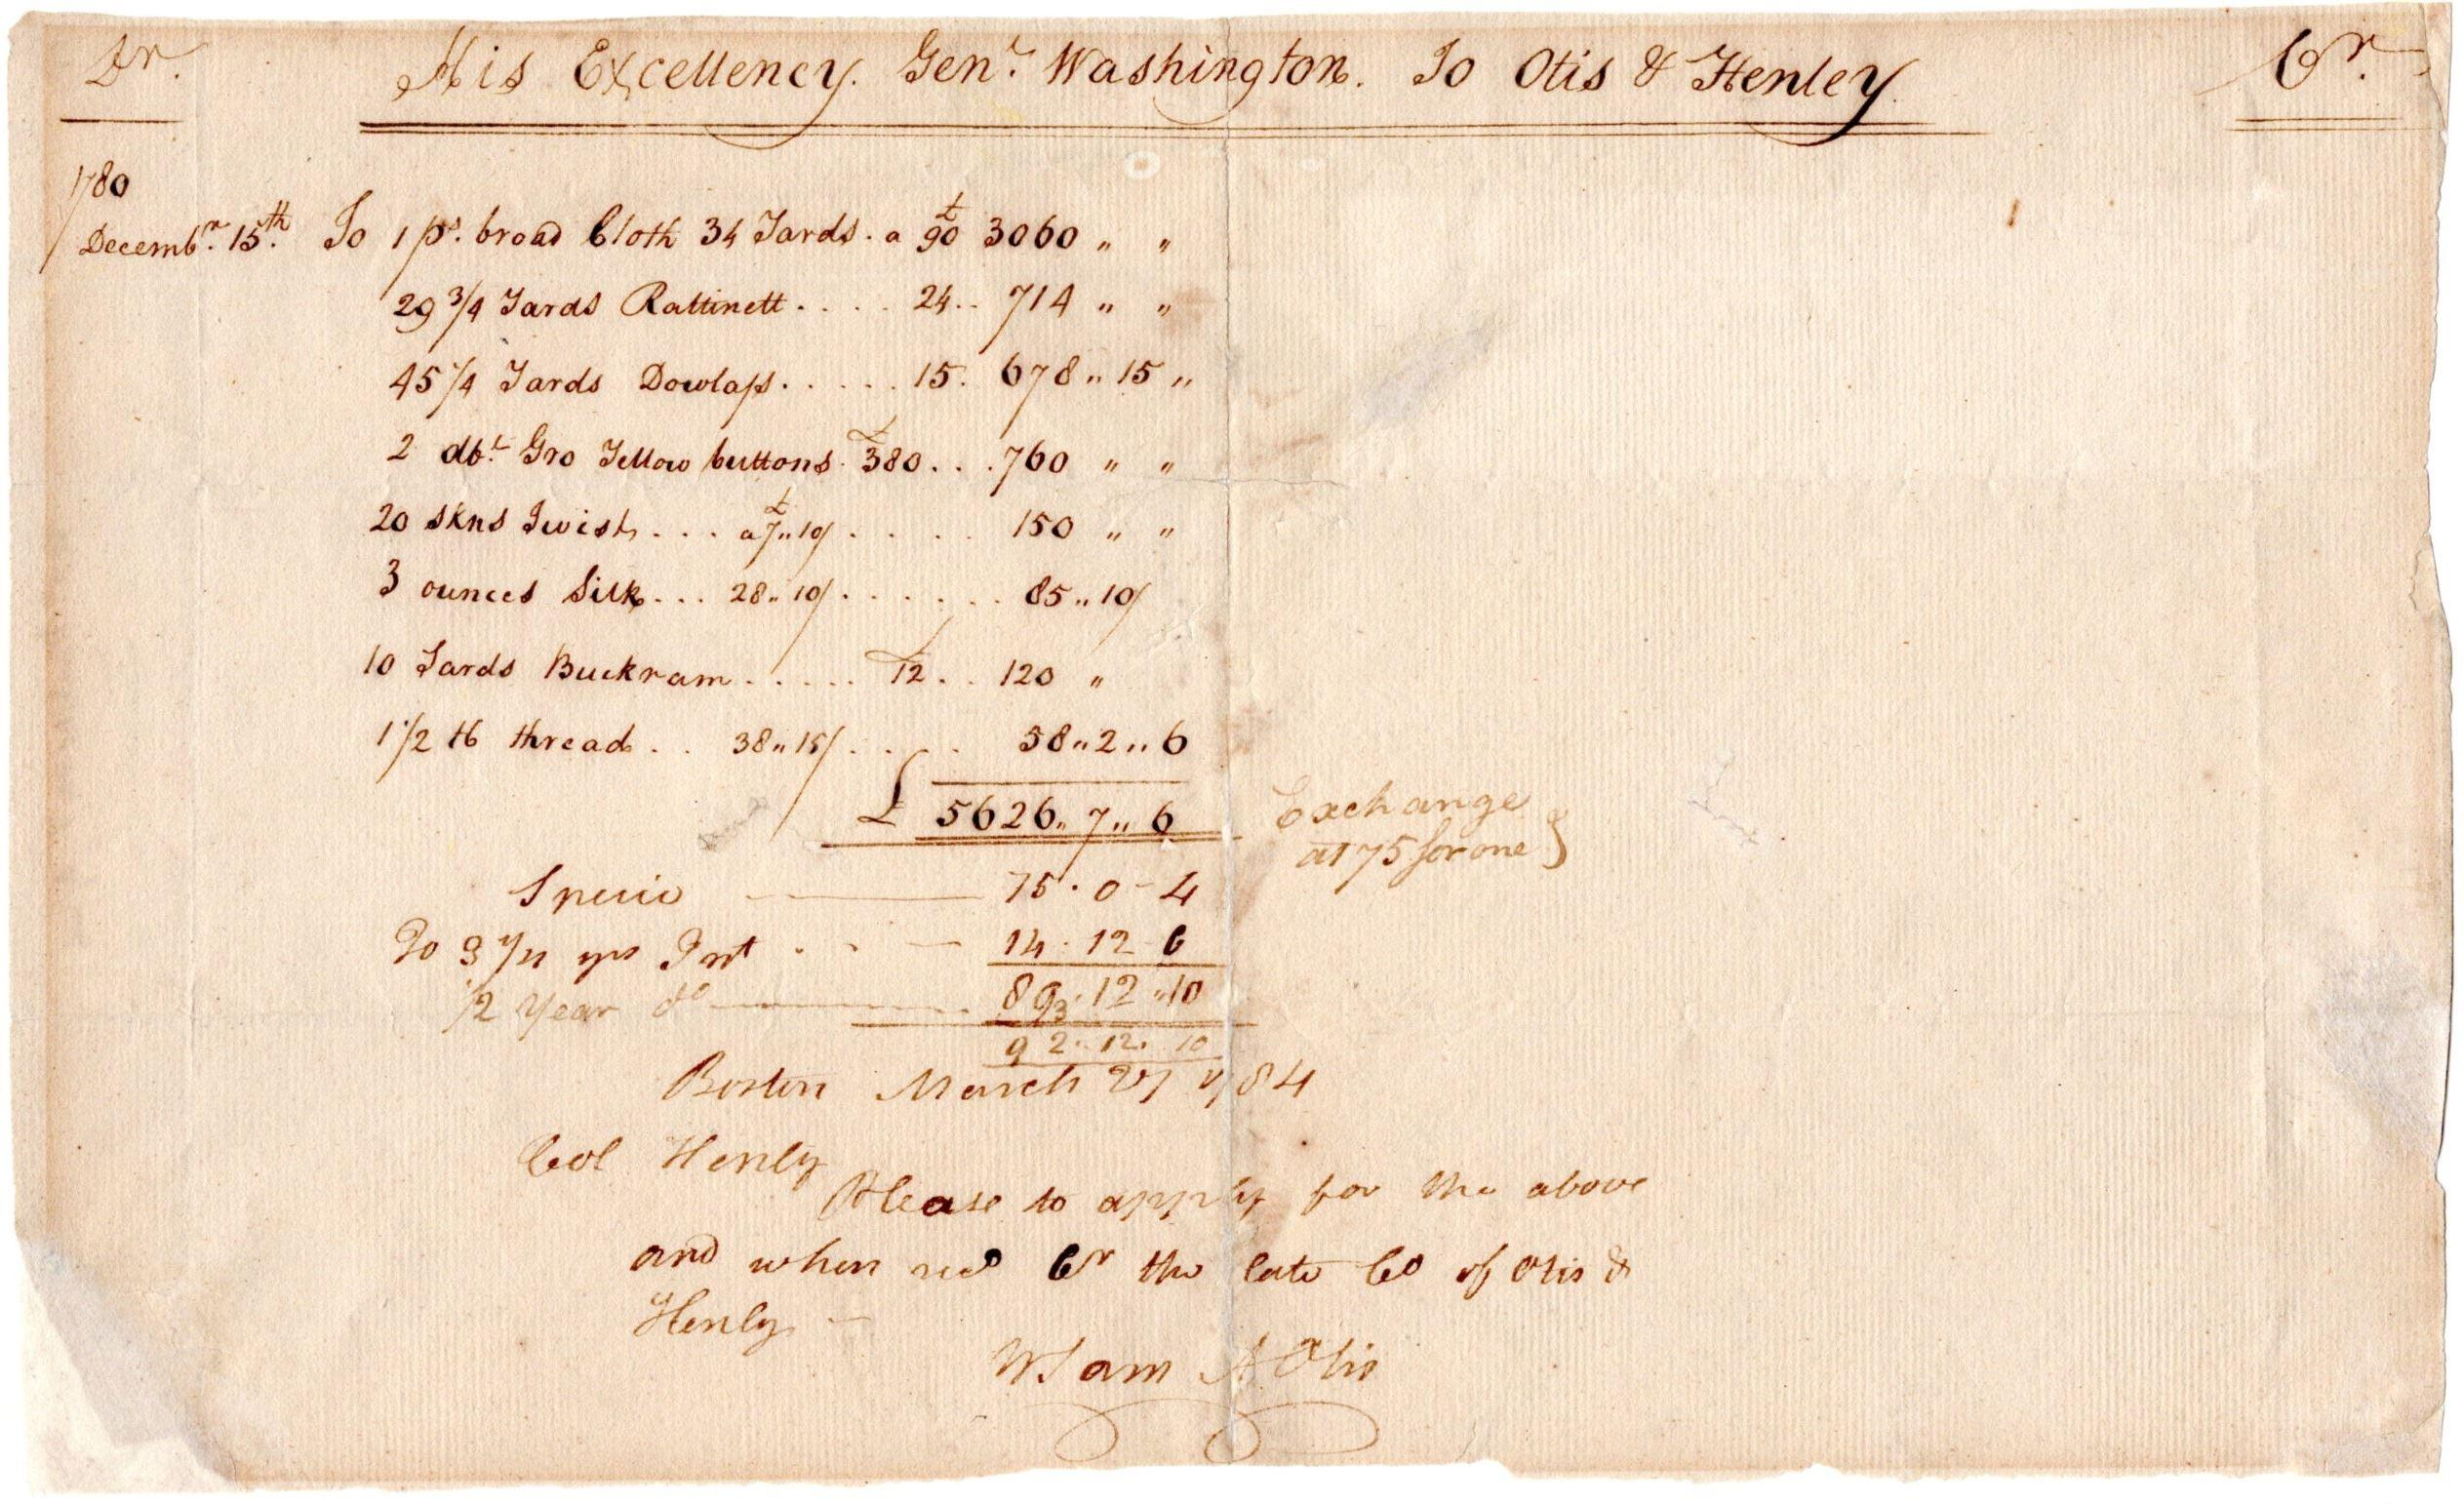 George Washington's Account with Boston Merchants for Cloth for the Continental Army